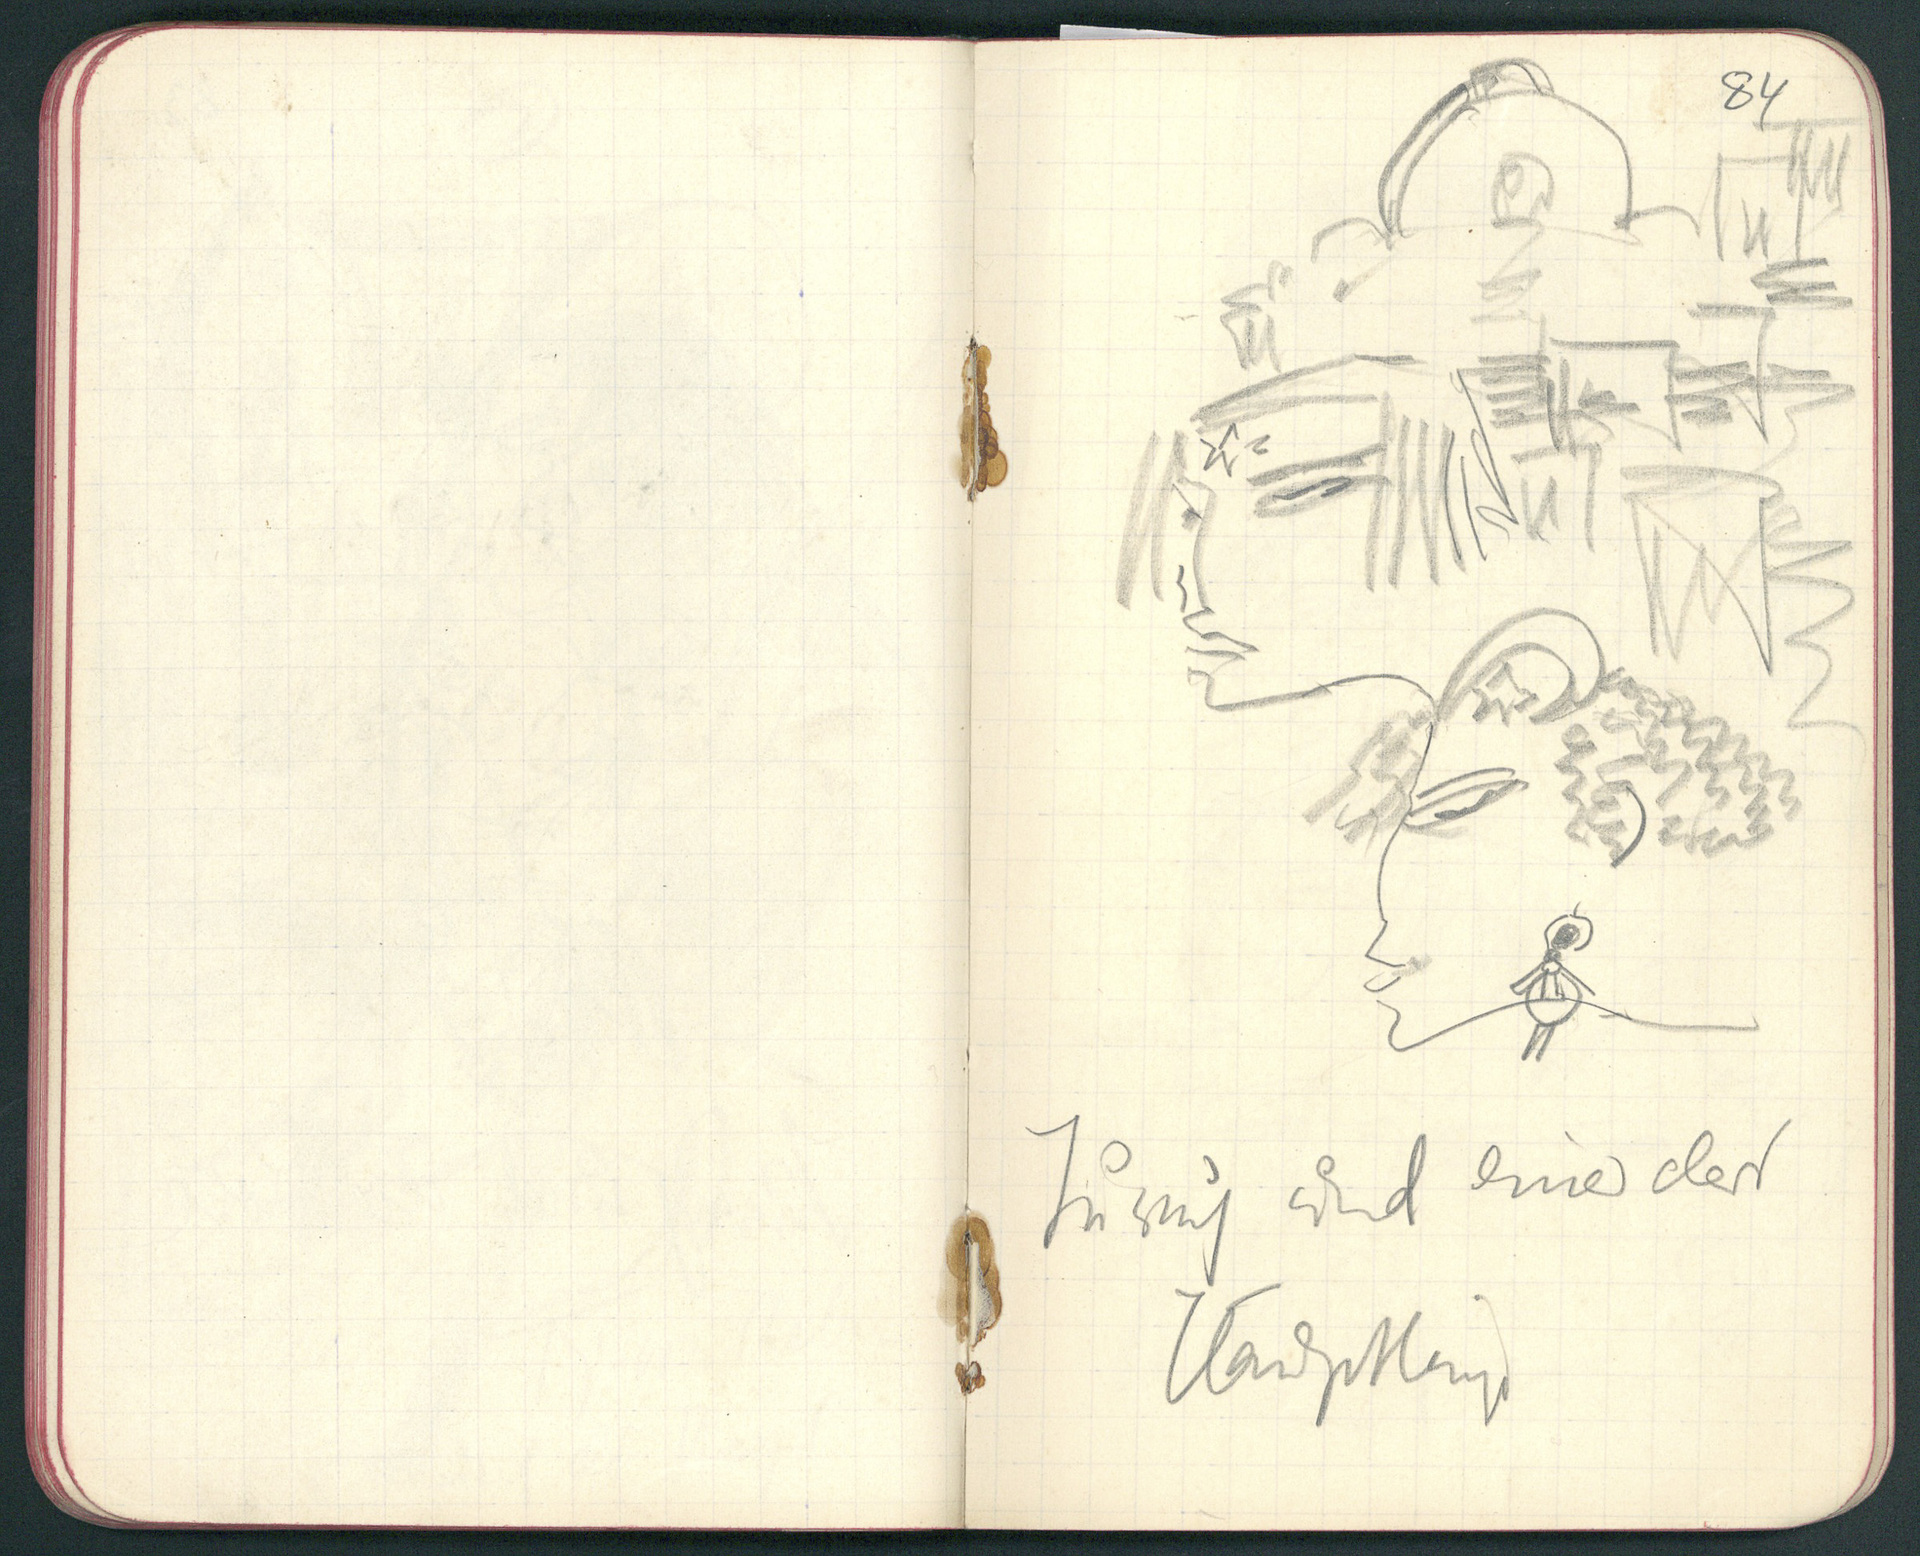 Drawings in Albert Ehrenstein's Notebook